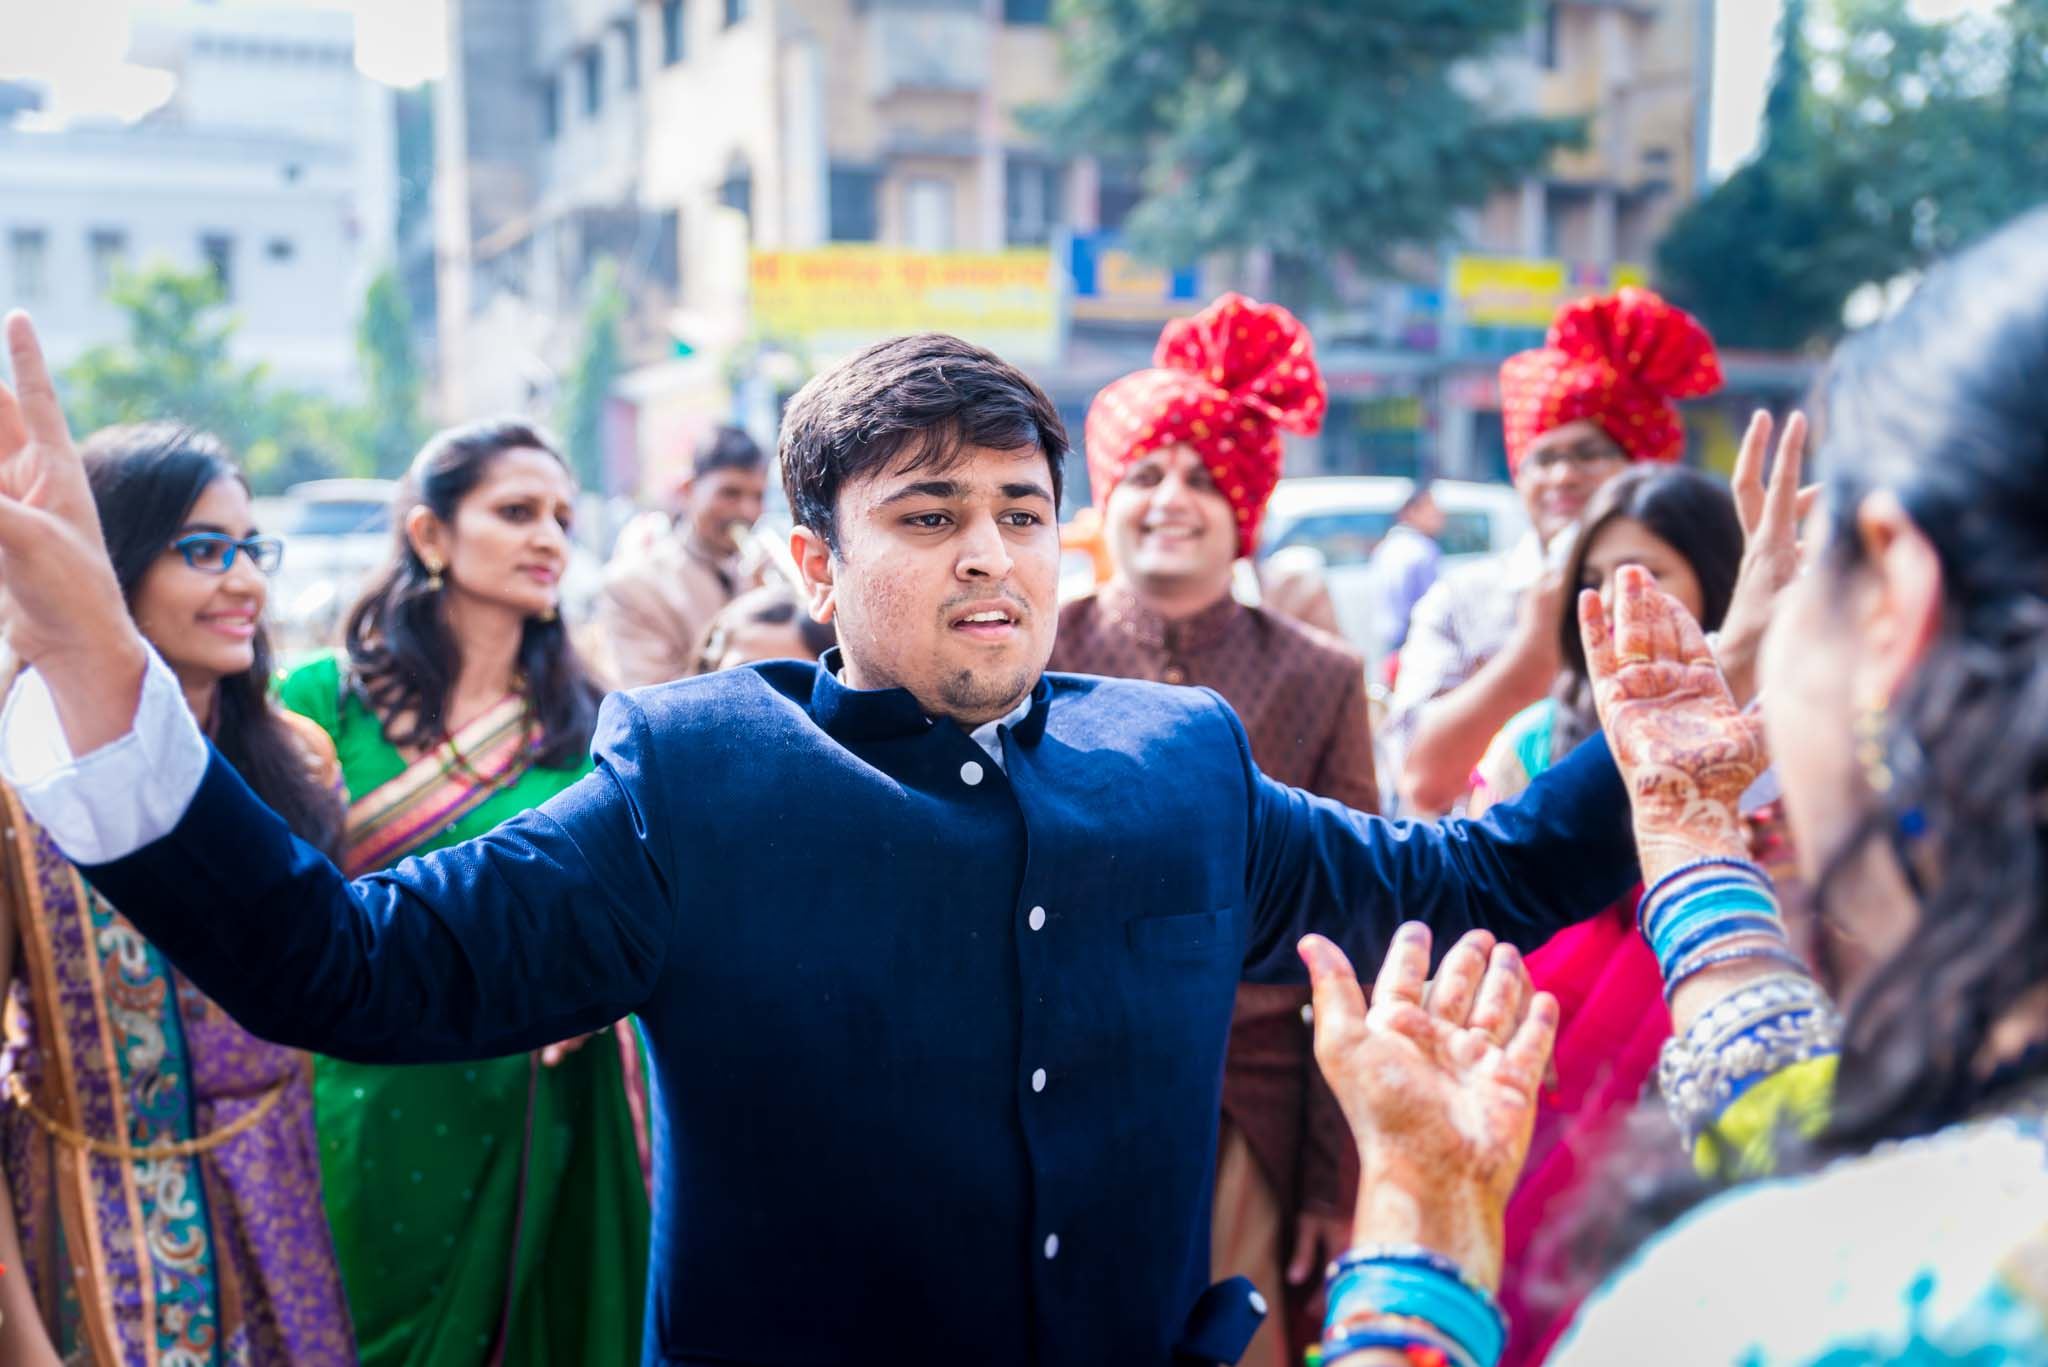 Candid-Wedding-Photography-Nagpur-Destination-59